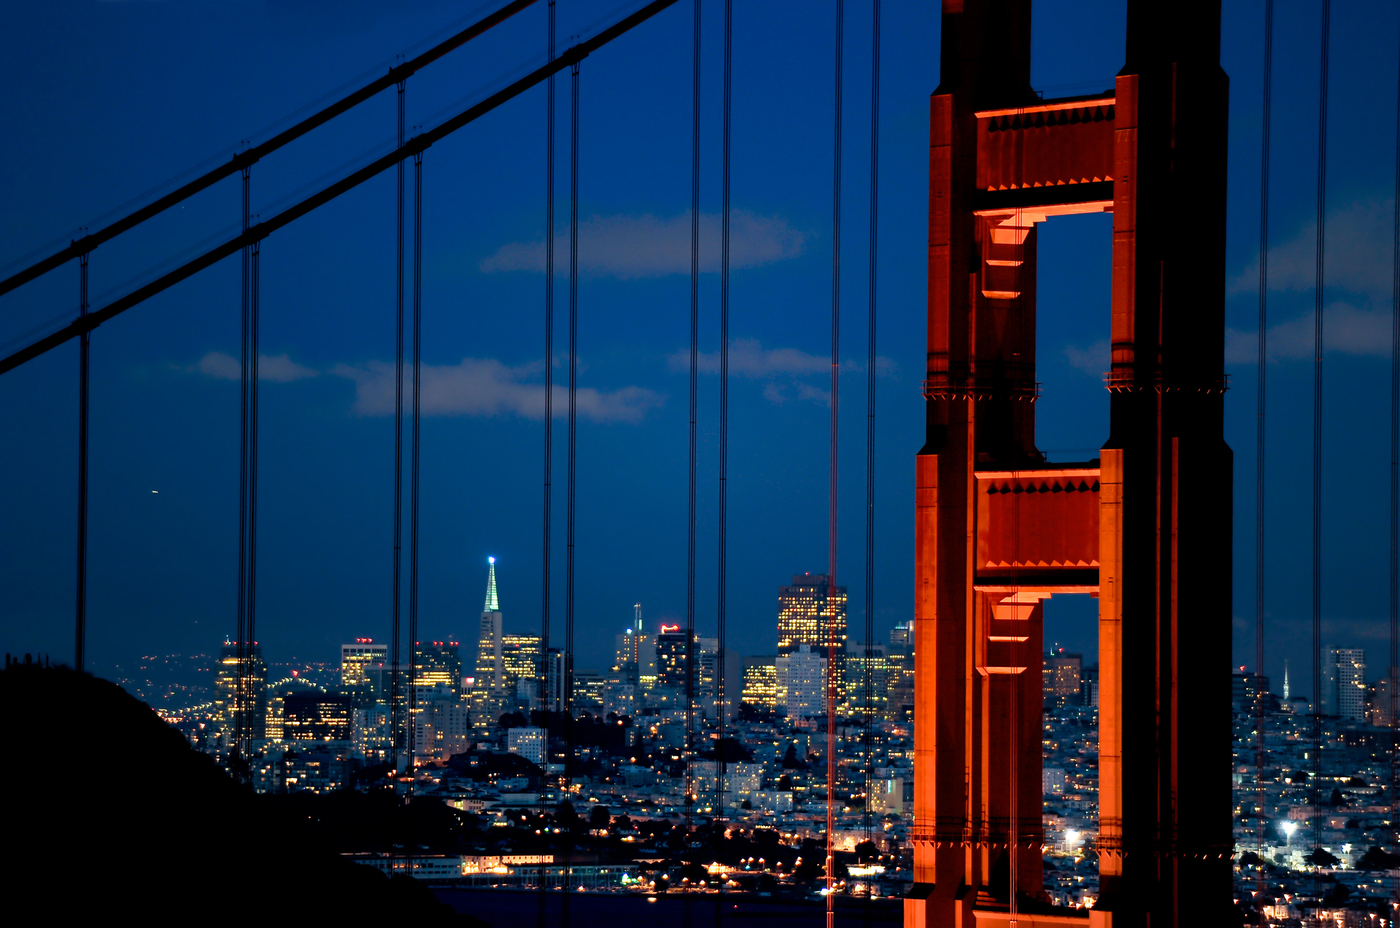 Bass-and-Bass-Law-San-Francisco-California (1).jpg